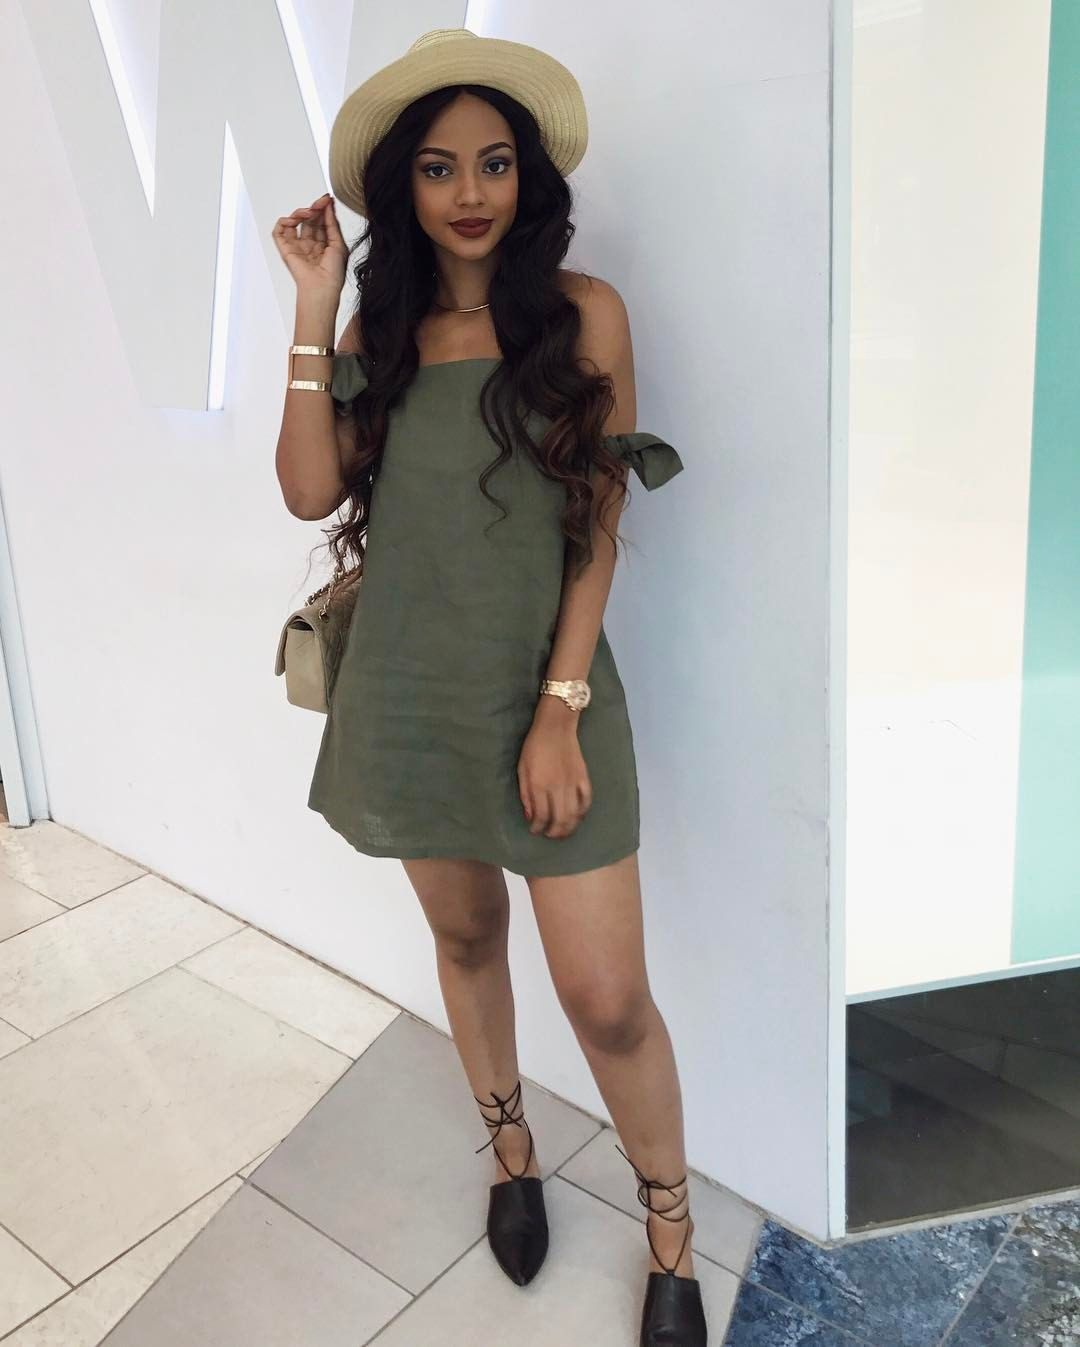 7811 Likes 60 Comments - Mihlali Ndamase (@mihlalii_n) on Instagram u201cHow cute is my dress ...